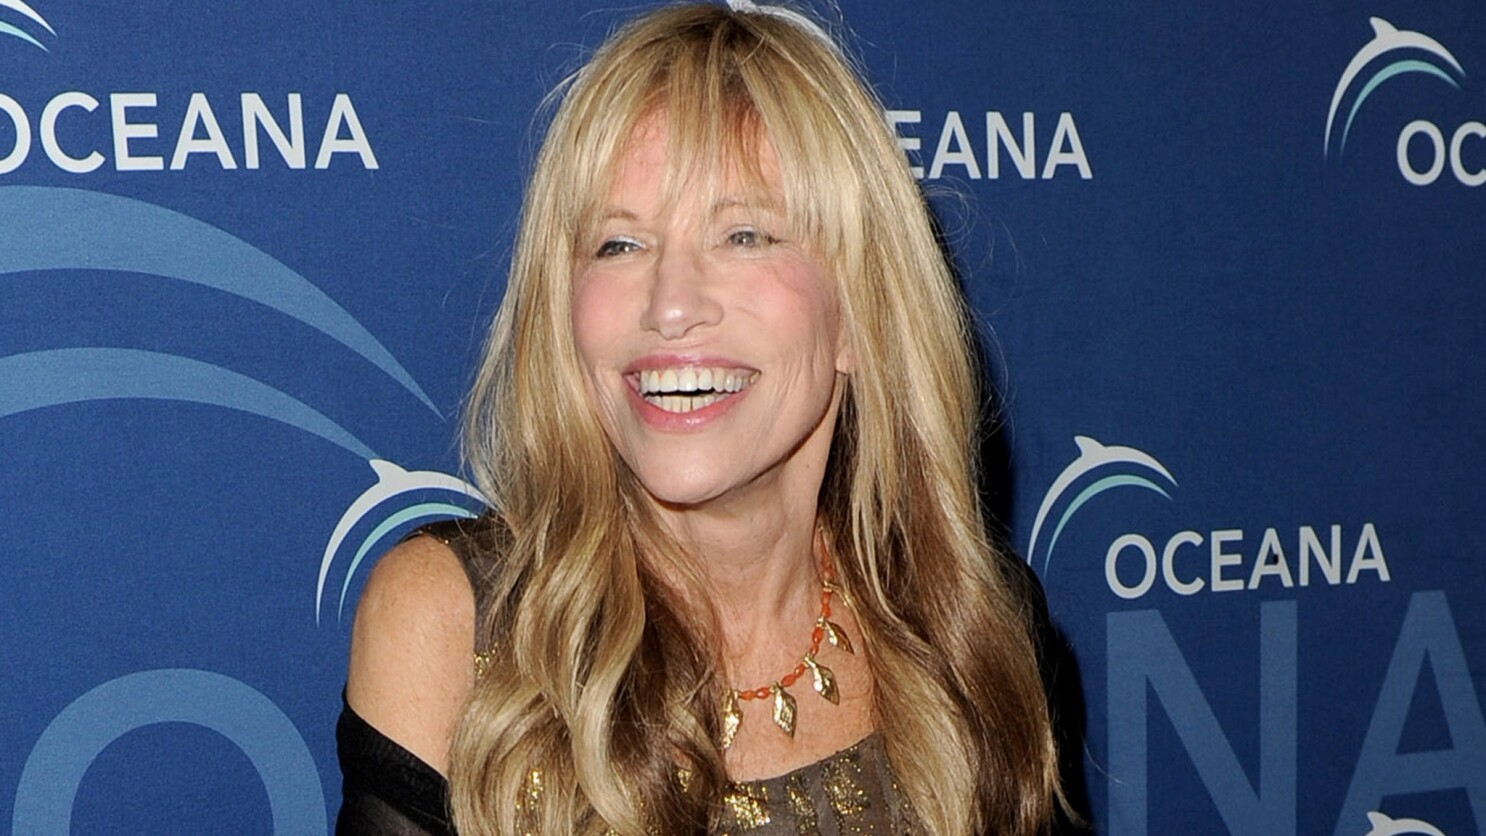 Carly Simon finally reveals who's so vain in 'You're So Vain ...